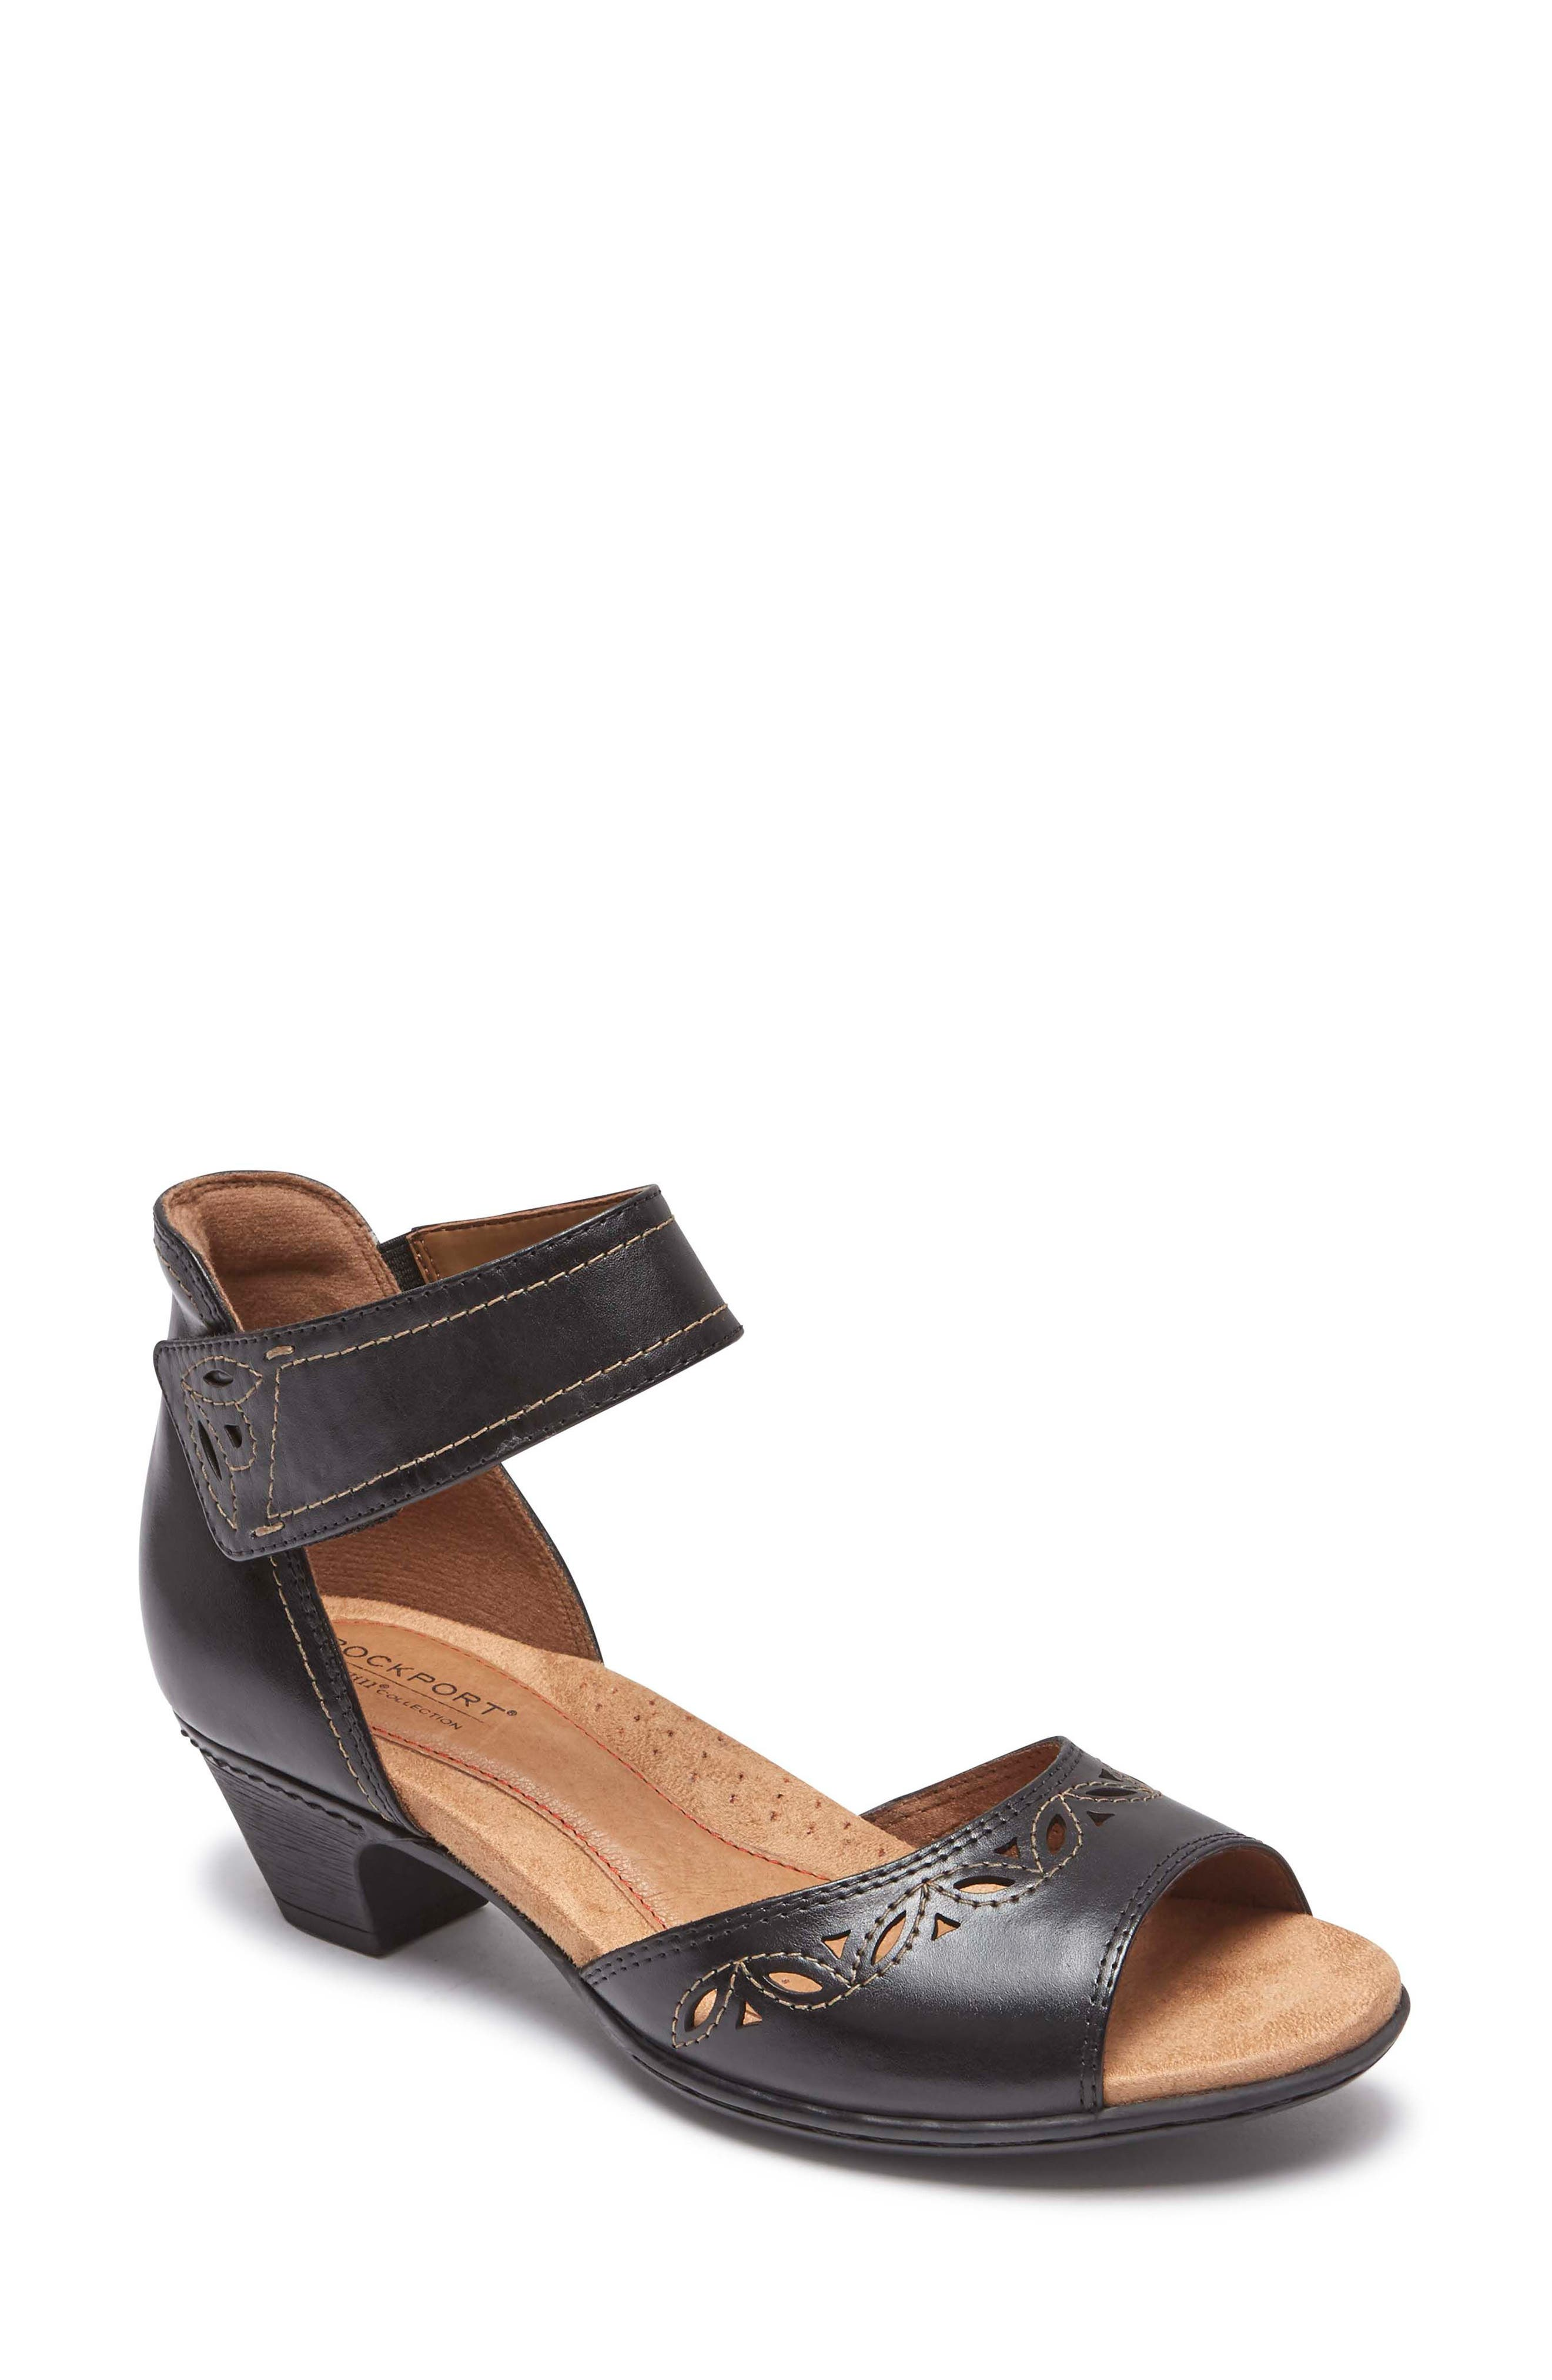 Abbott Perforated Sandal,                         Main,                         color,